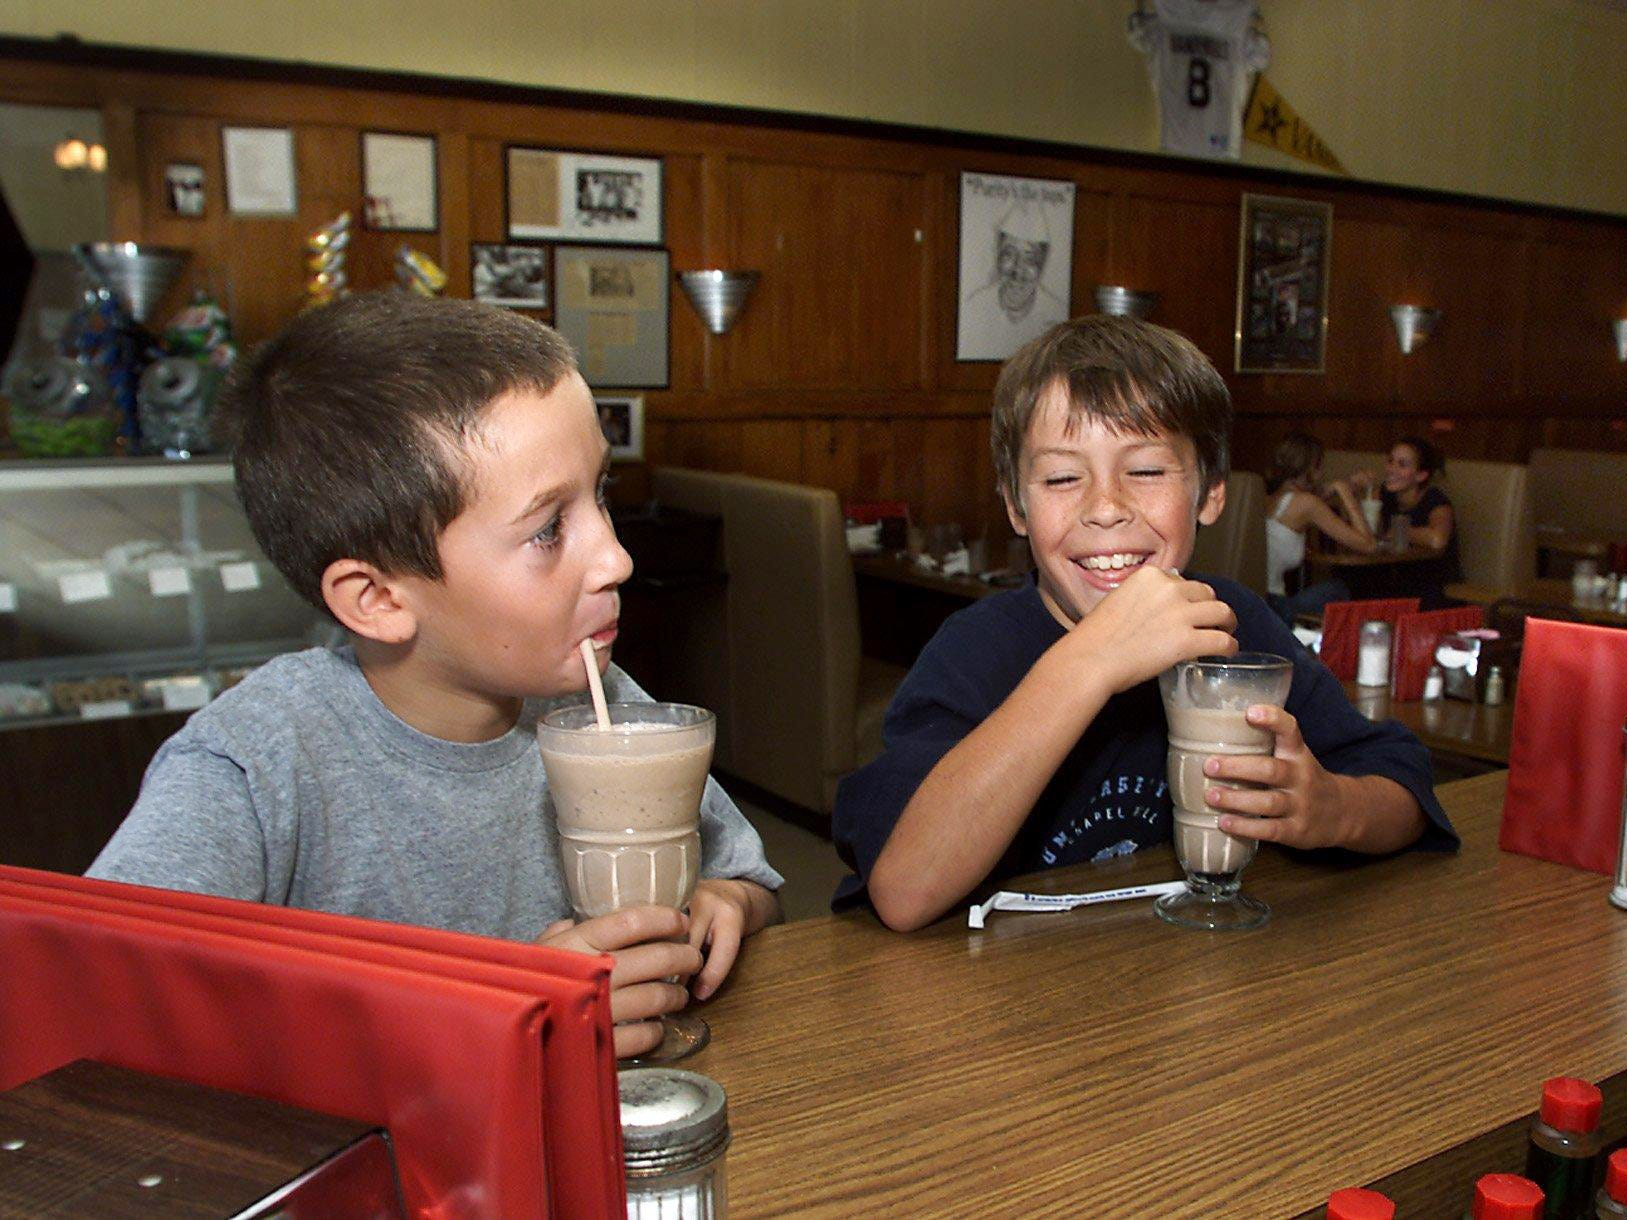 Michael Mayo, left, 10, and Will Holt, 9, students at Oak Hill School enjoy a big chocolate shake at Vandyland on West End Aug. 14, 2000. Both youngsters are regular customers.